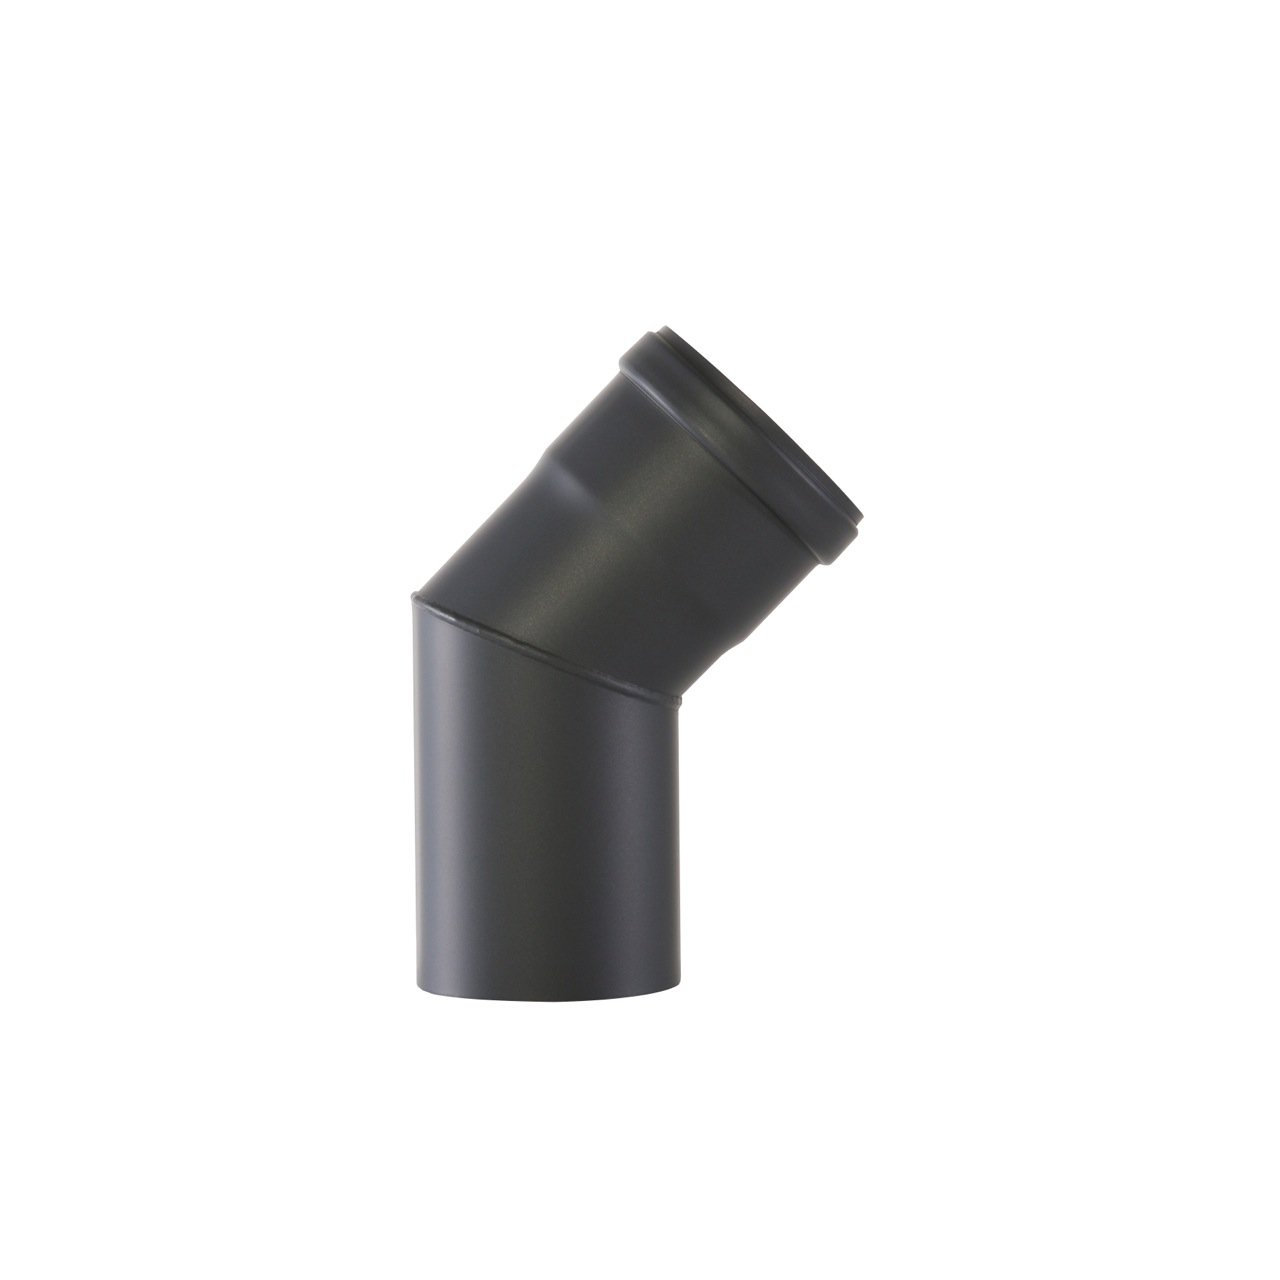 Kamino-Flam 45° Elbow Pipe Ø 80 mm, Steel Elbow Pipe Suitable for Pellet Stoves, Senotherm Coated Elbow Chimney Pipe, Heat Resistant Flue Elbow with Silicone Seal, EN 1856-2 Standard, Black Kamino - Flam 122683